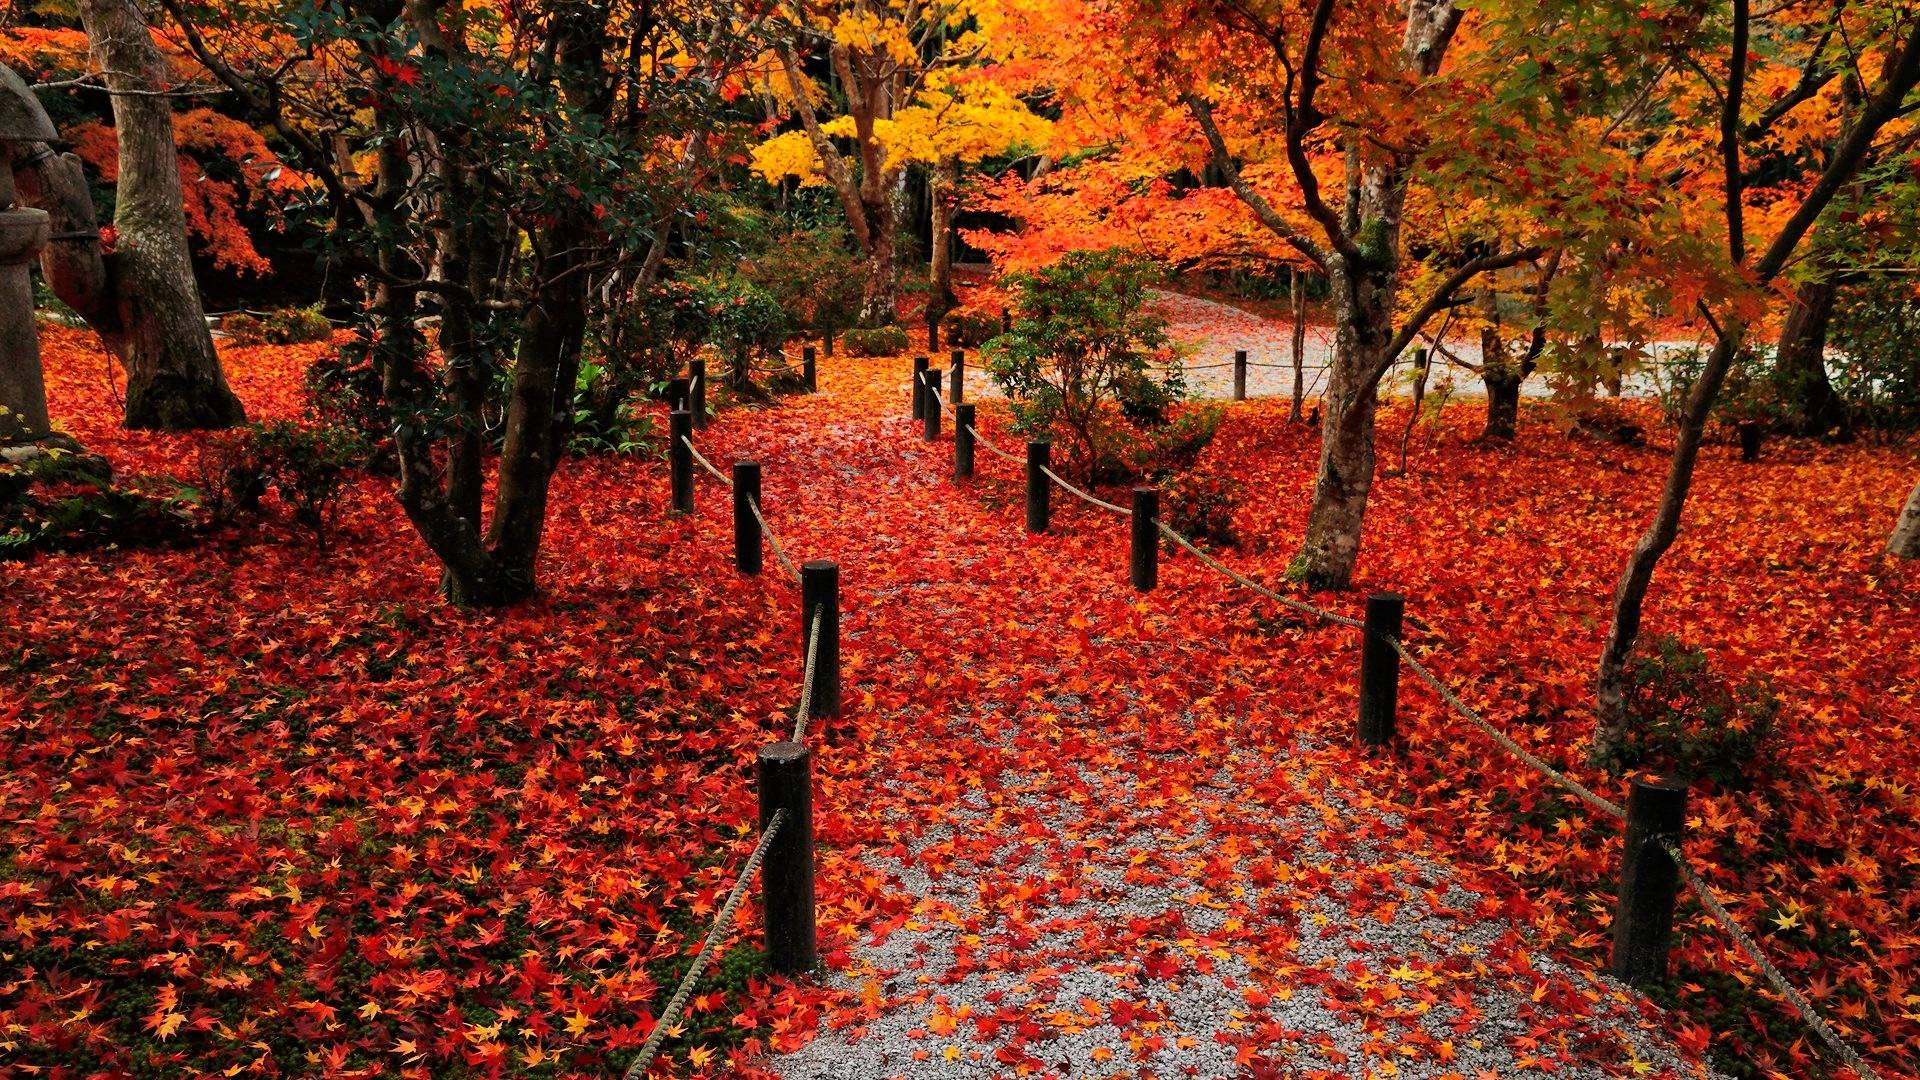 Autumn Leaves Wallpapers - Wallpaper Cave